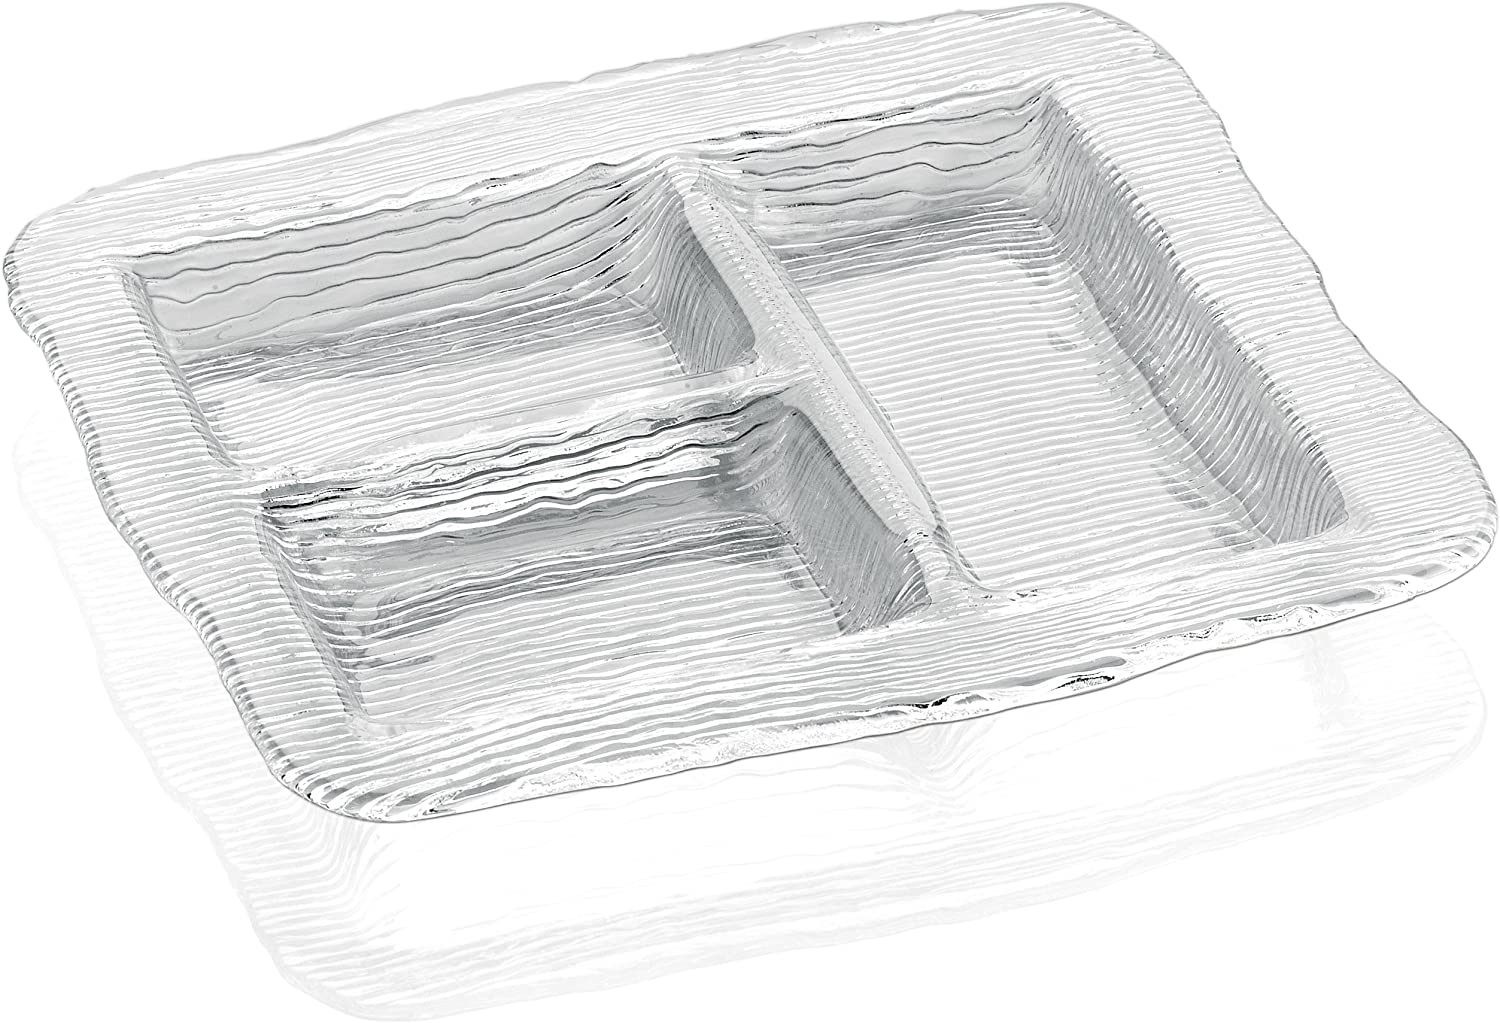 IVV Glassware All in One 2-Section Rectangular Relief Dish 12-1//5 by 5-1//5 Three Section Clear